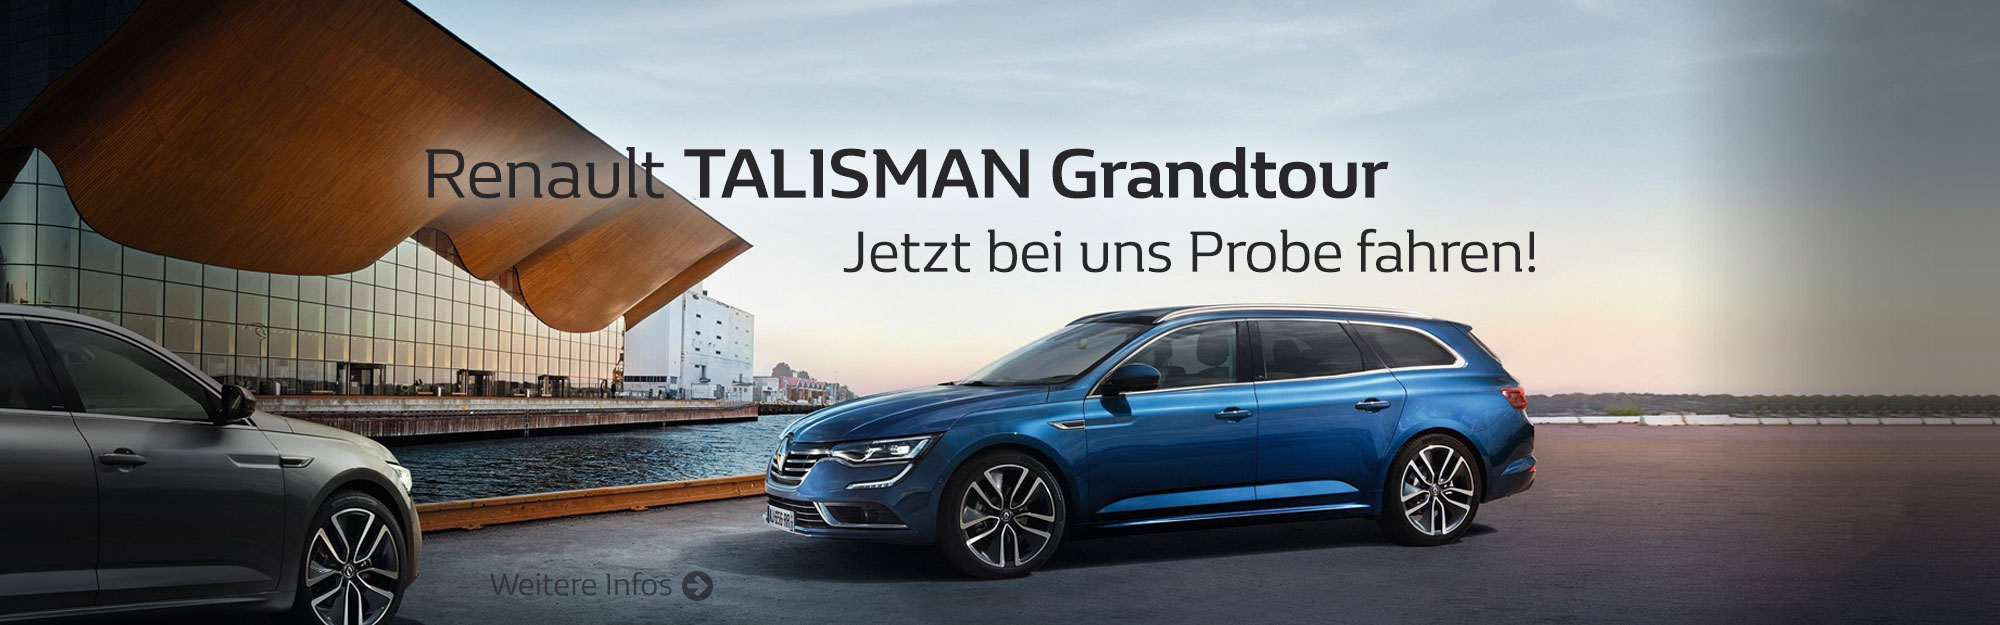 renault talisman grandtour autohaus richter. Black Bedroom Furniture Sets. Home Design Ideas